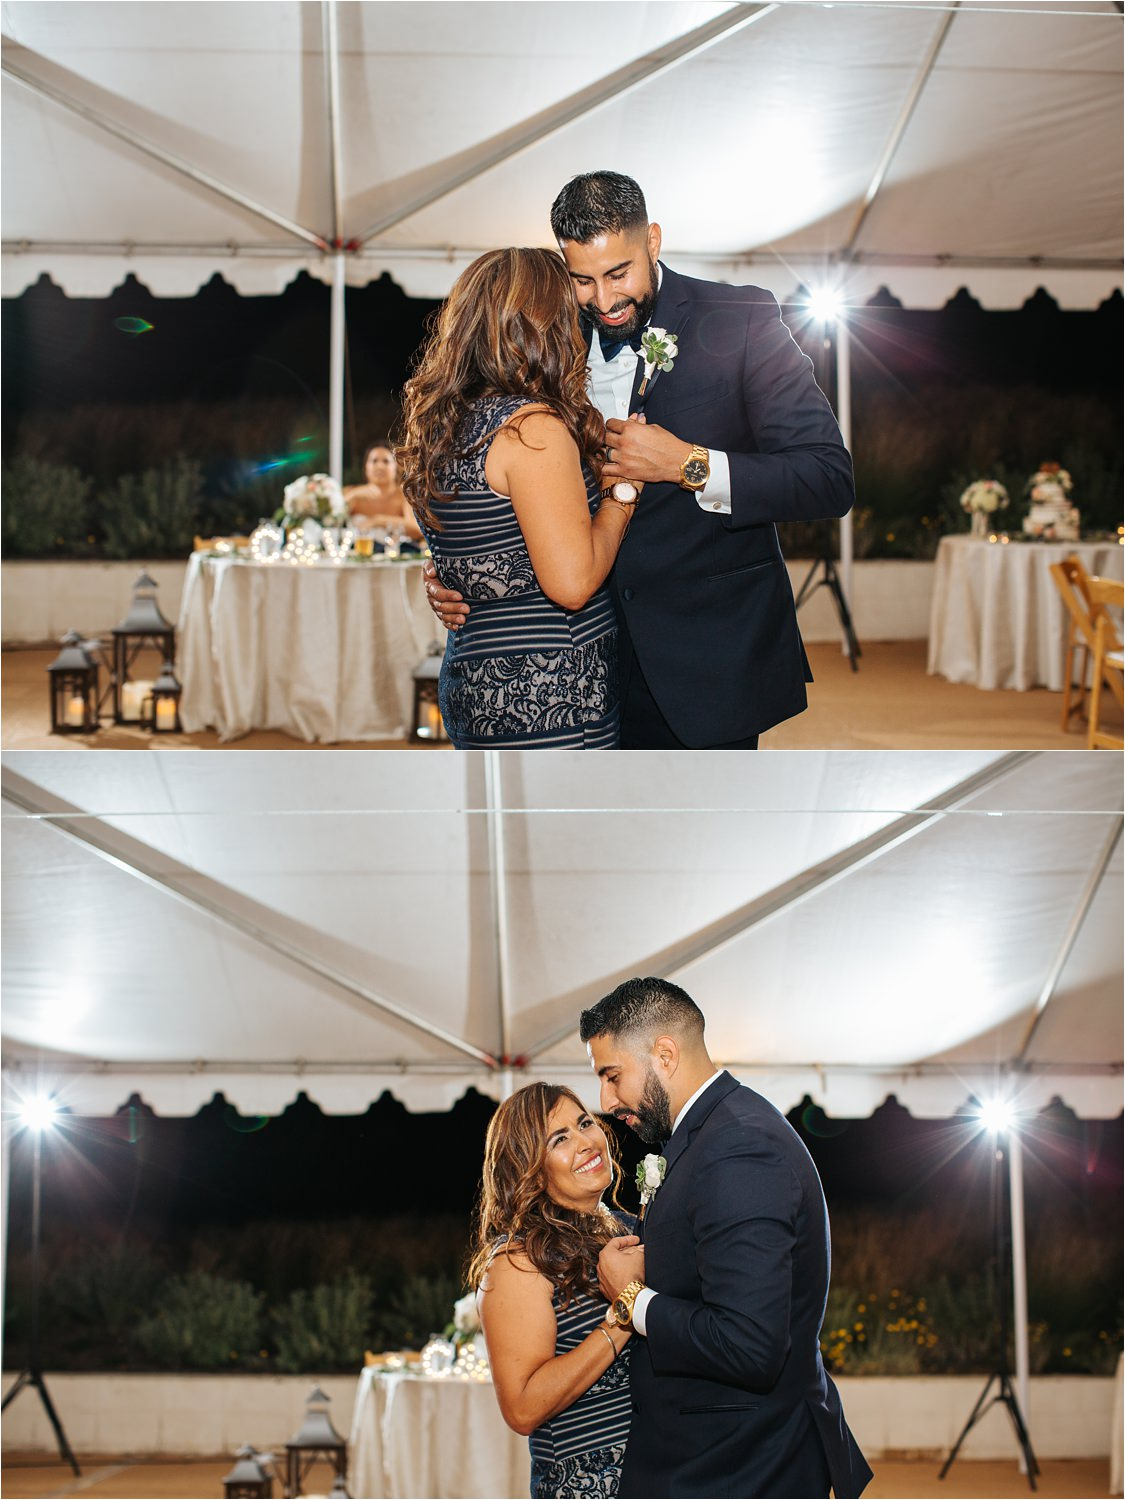 Mother and Son dance during wedding reception - http://brittneyhannonphotography.com